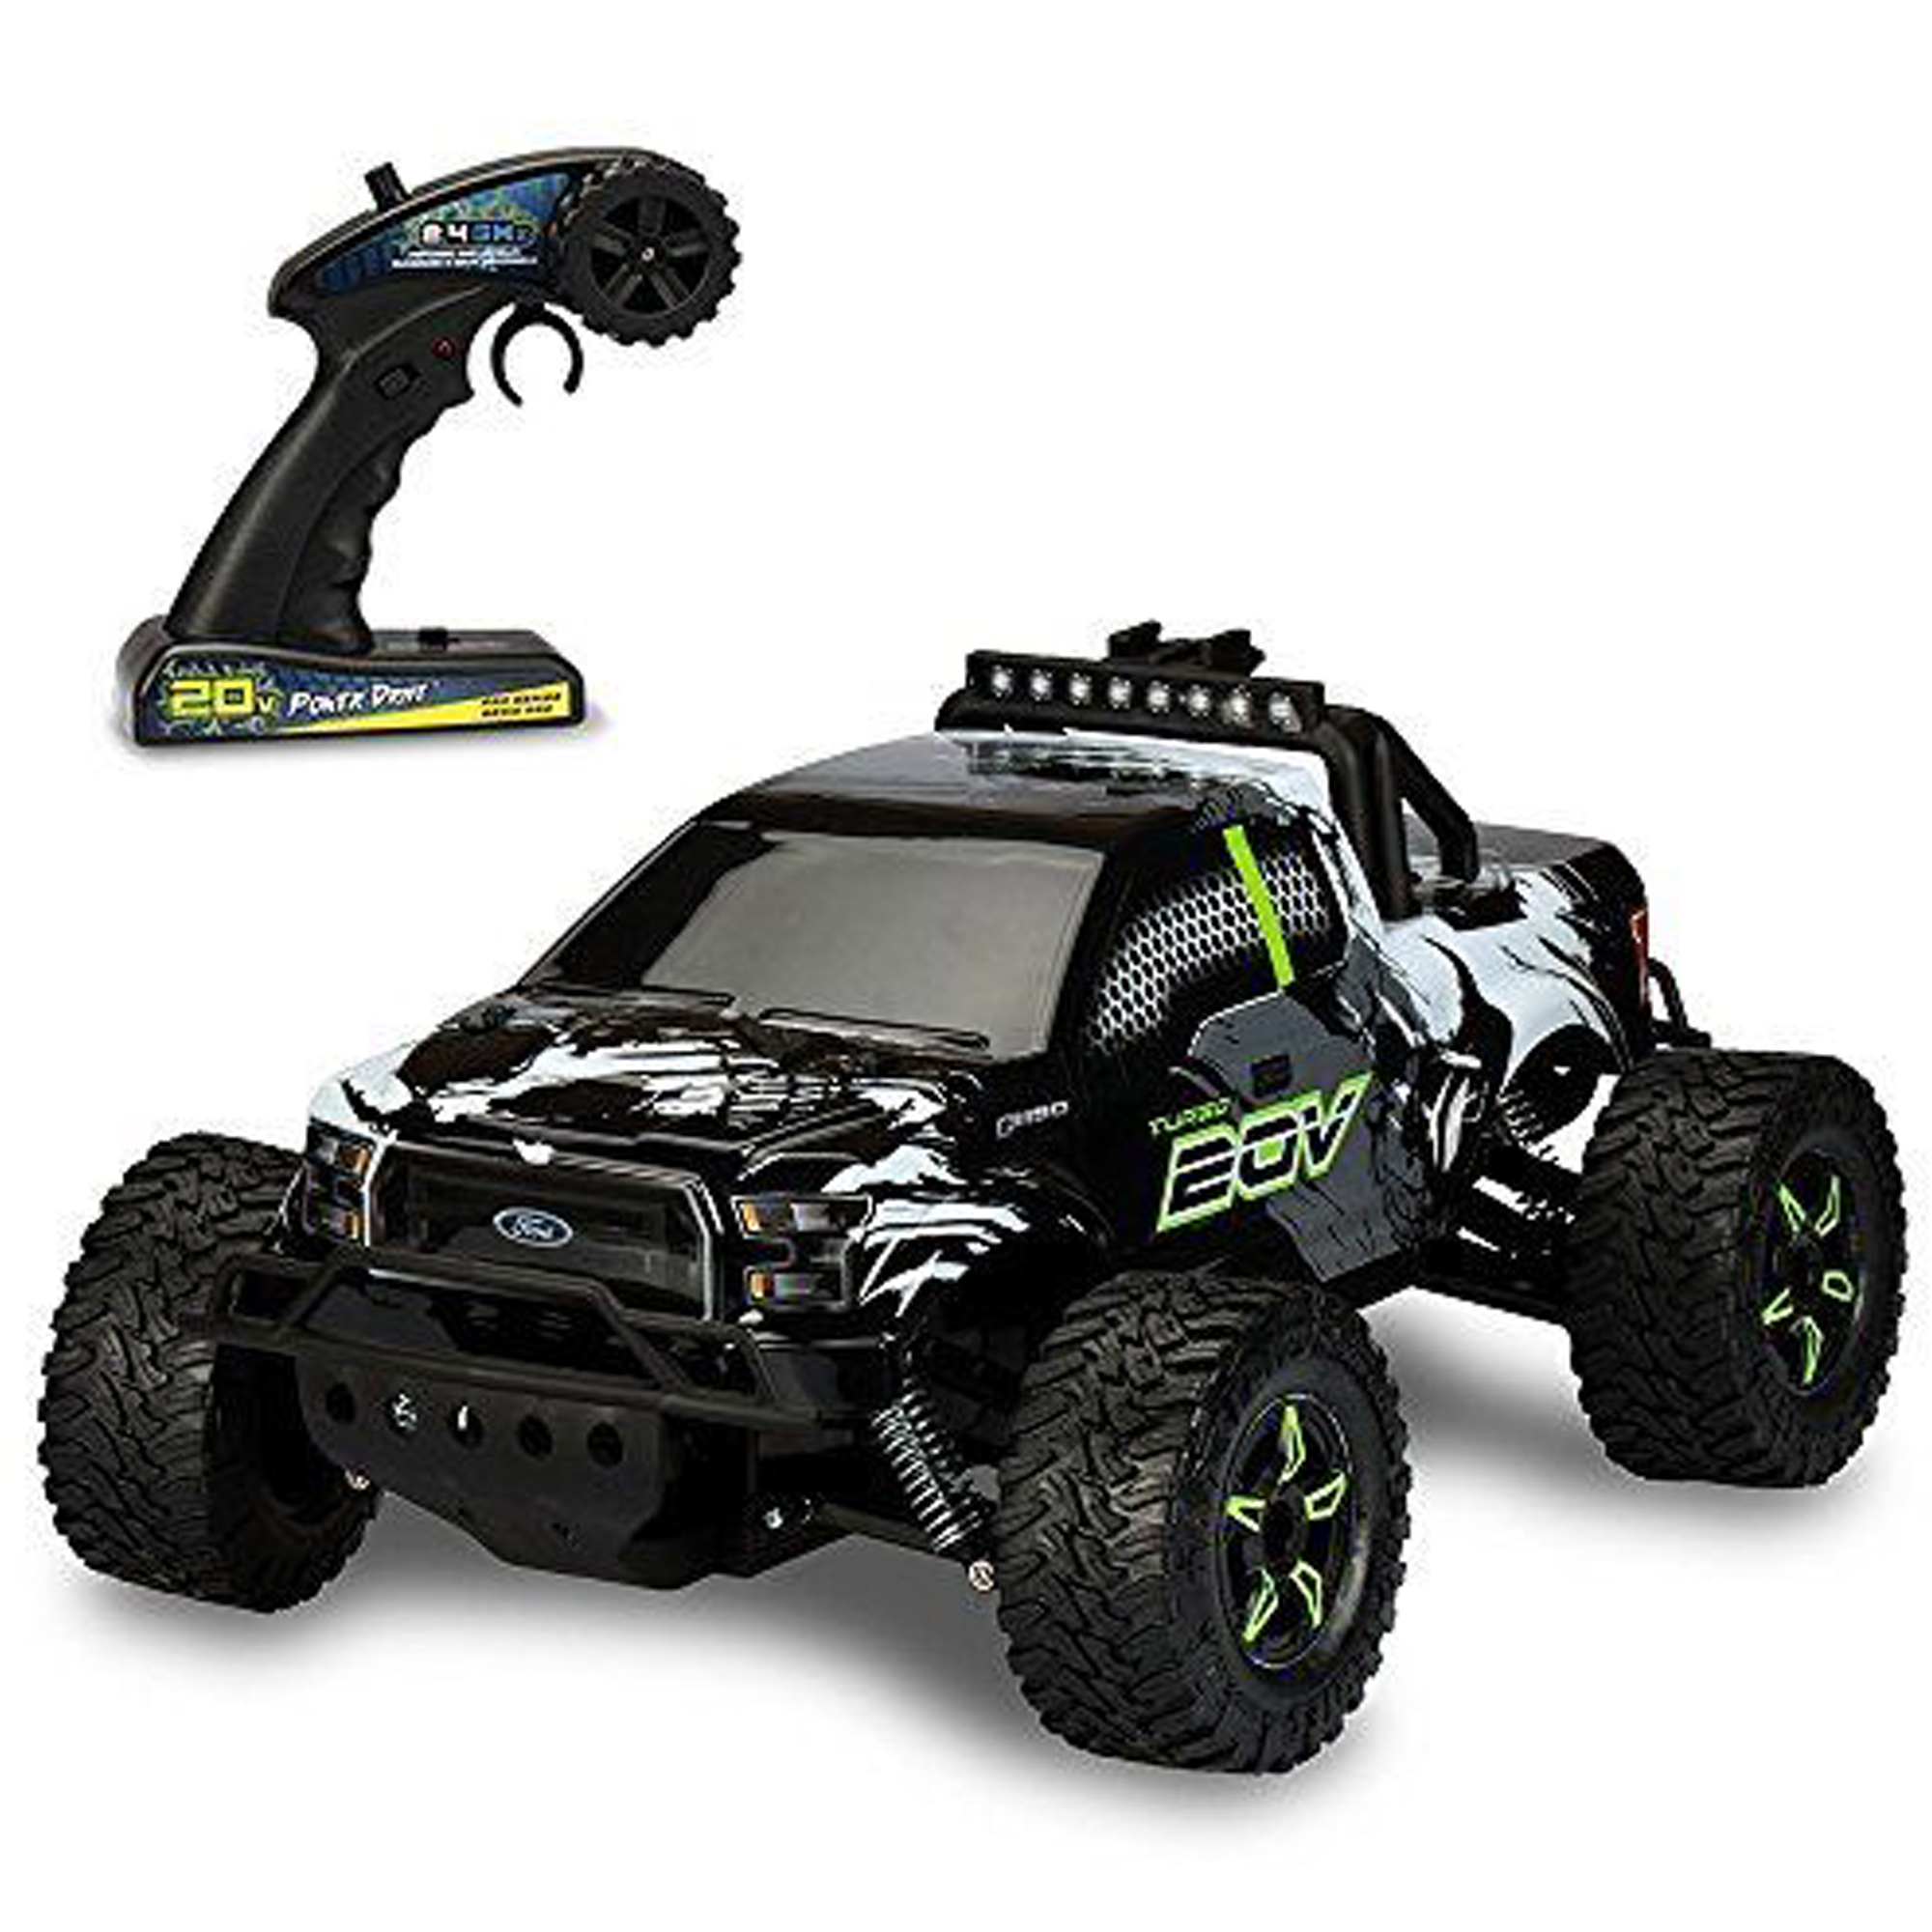 Kid Galaxy Ford F150 Remote Control Truck. Fast 30 MPH All Terrain Off-road RC Car